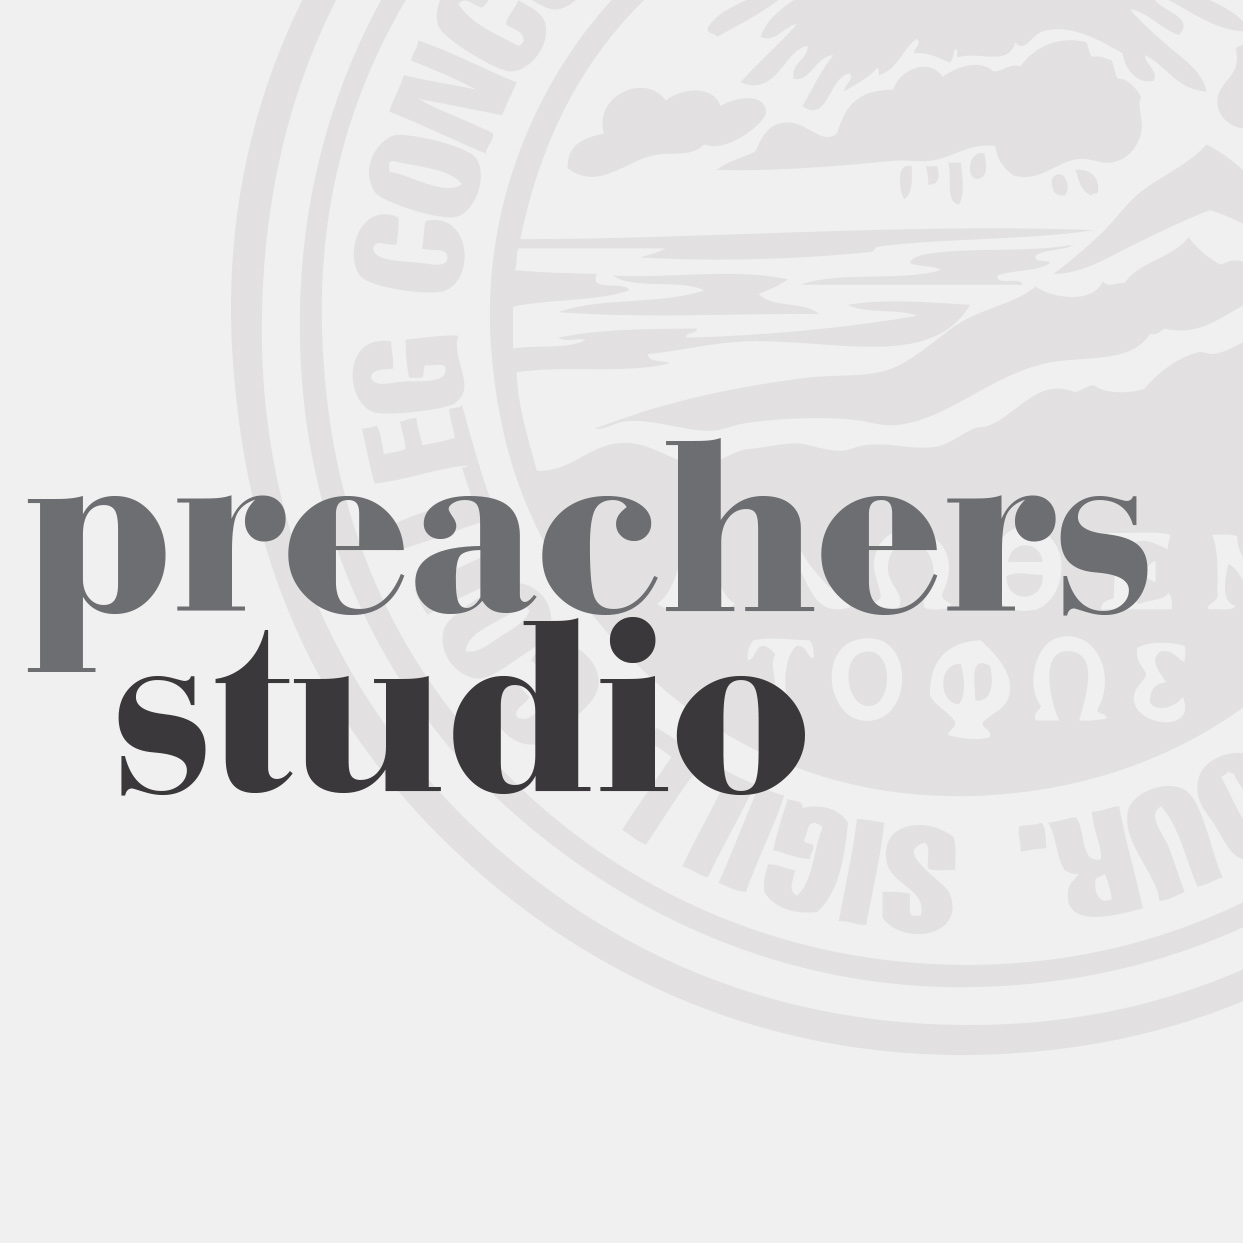 Preachers Studio: Ben Griffin